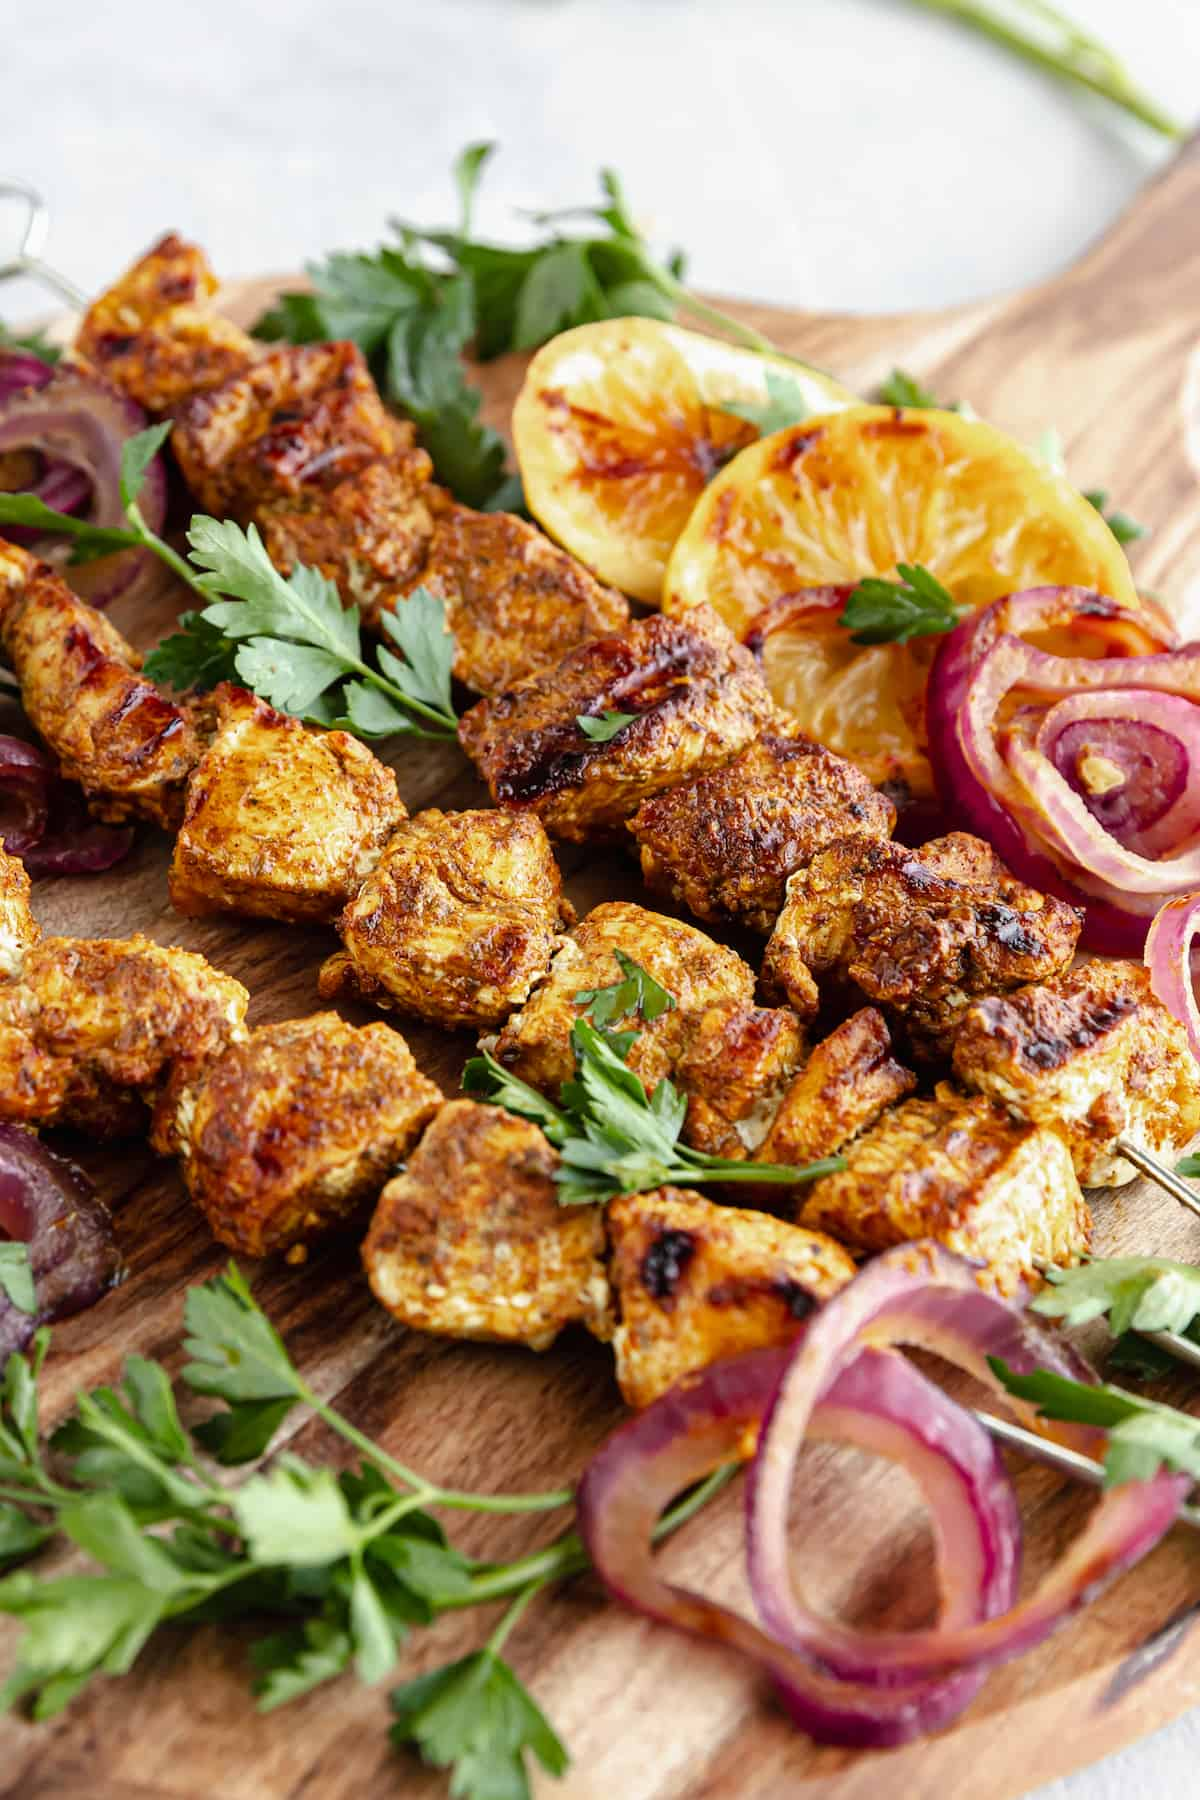 A Cutting Board on a Table Holding Onions, Lemon Slices and Shawarma Grilled Chicken Skewers